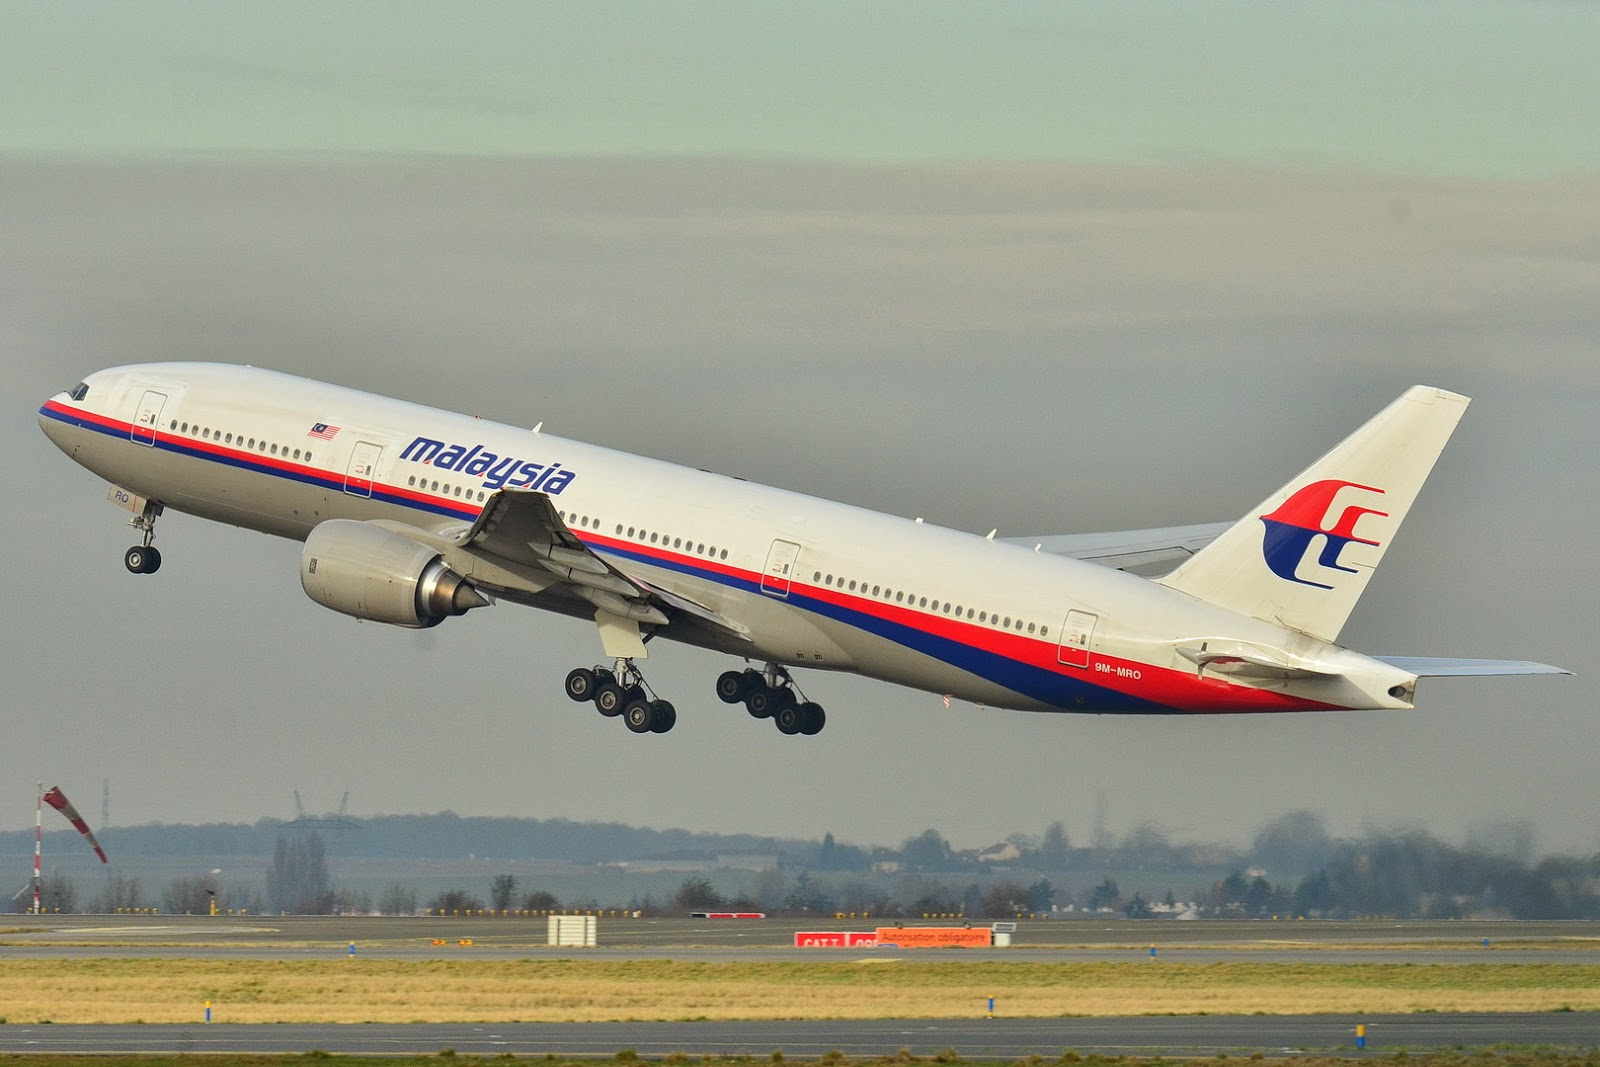 Malaysia Airlines Flight 370 (MH370/MAS370)